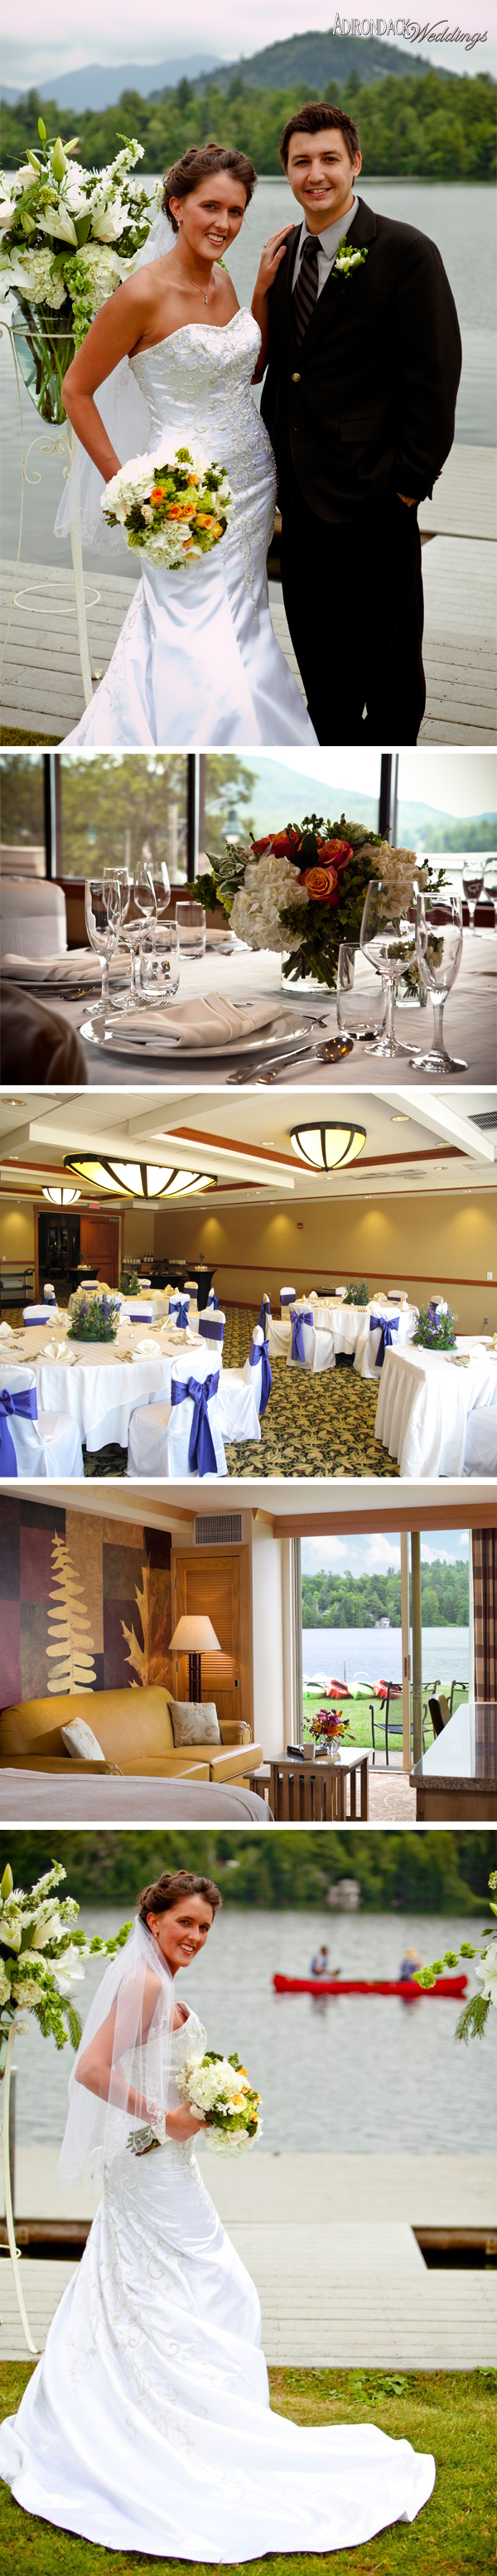 High Peak Resort | Lake Placid | Adirondack Weddings Magazine